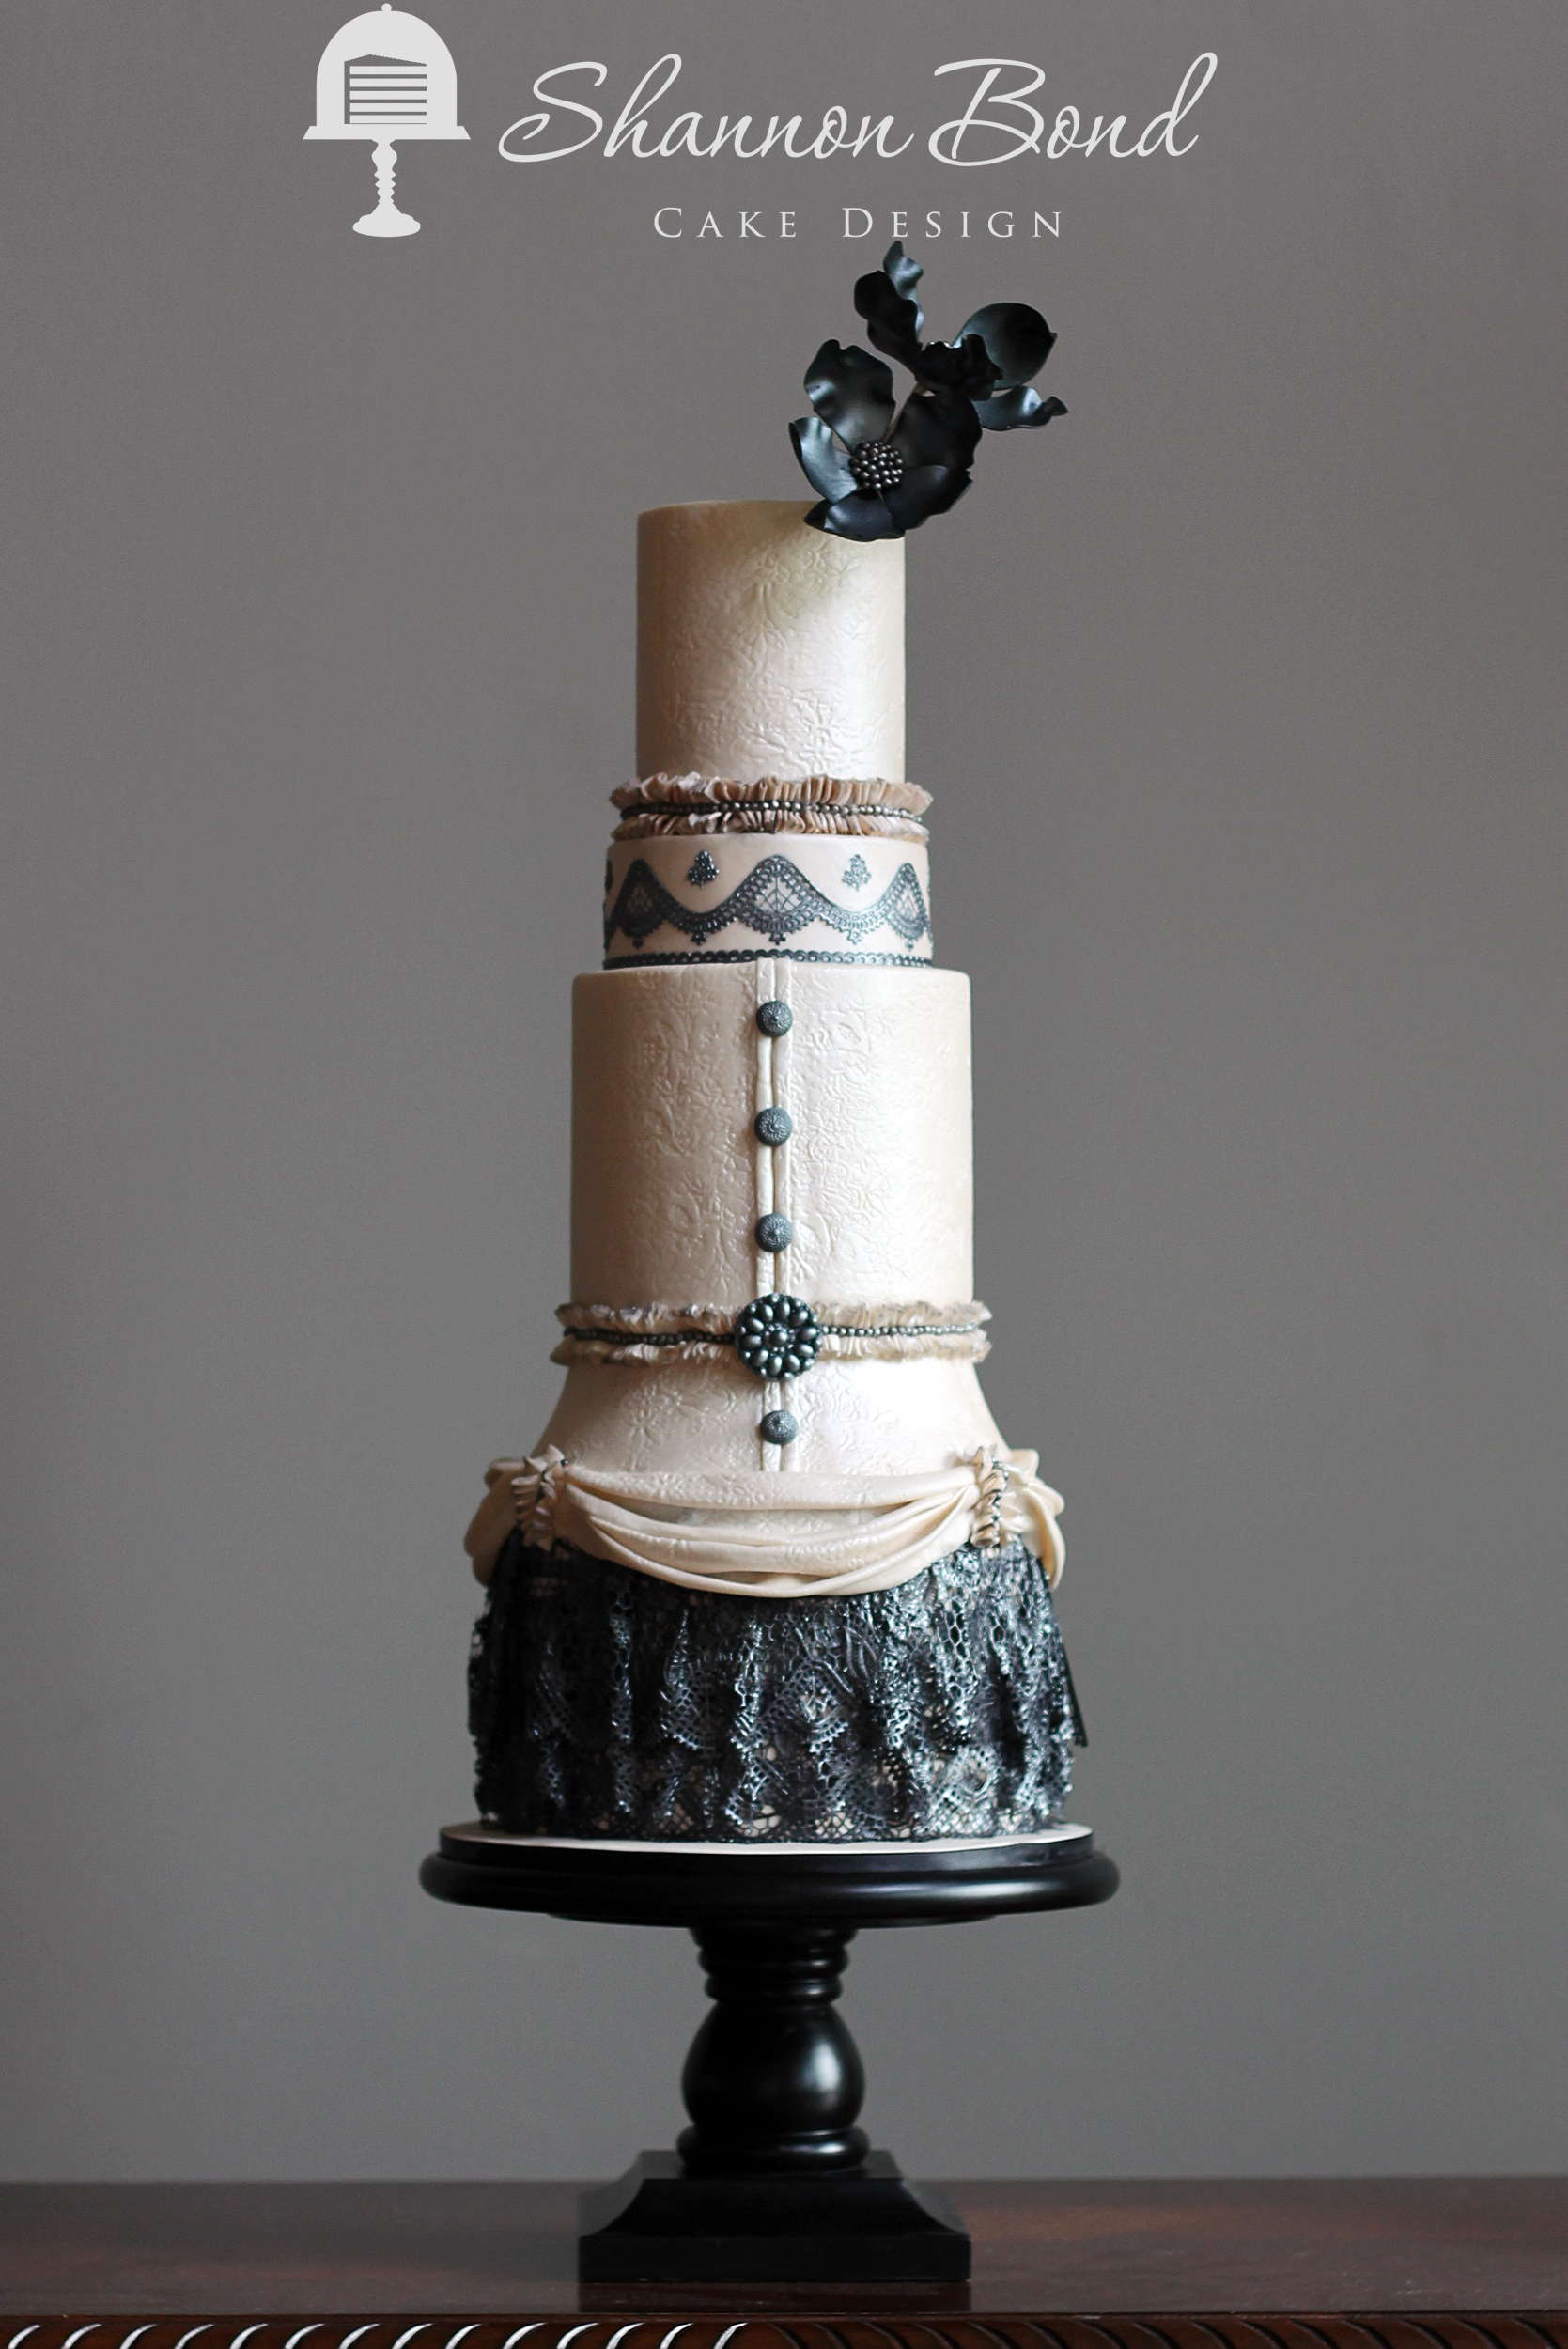 Ivory & Black Steampunk themed wedding